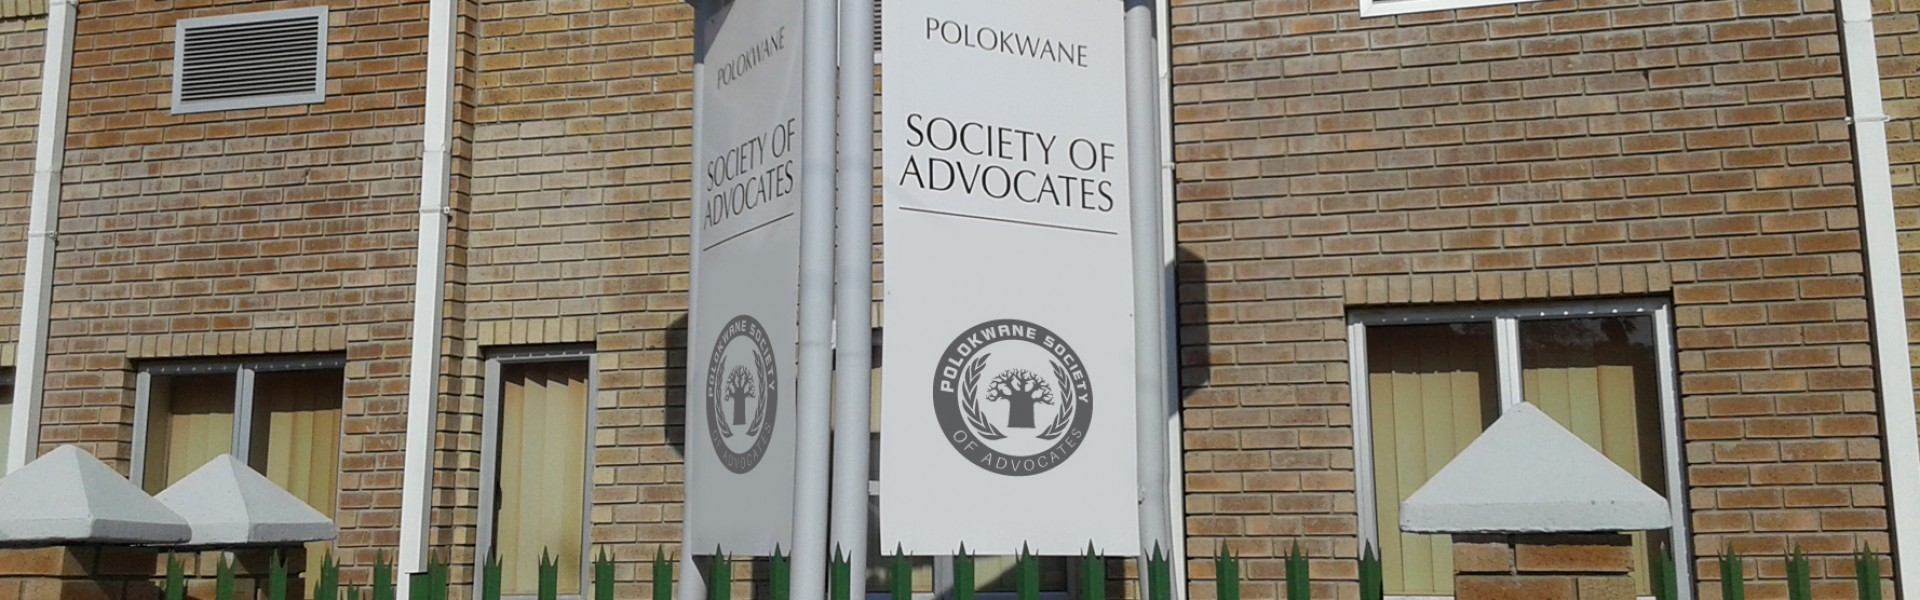 POLOKWANE SOCIETY OF ADVOCATES